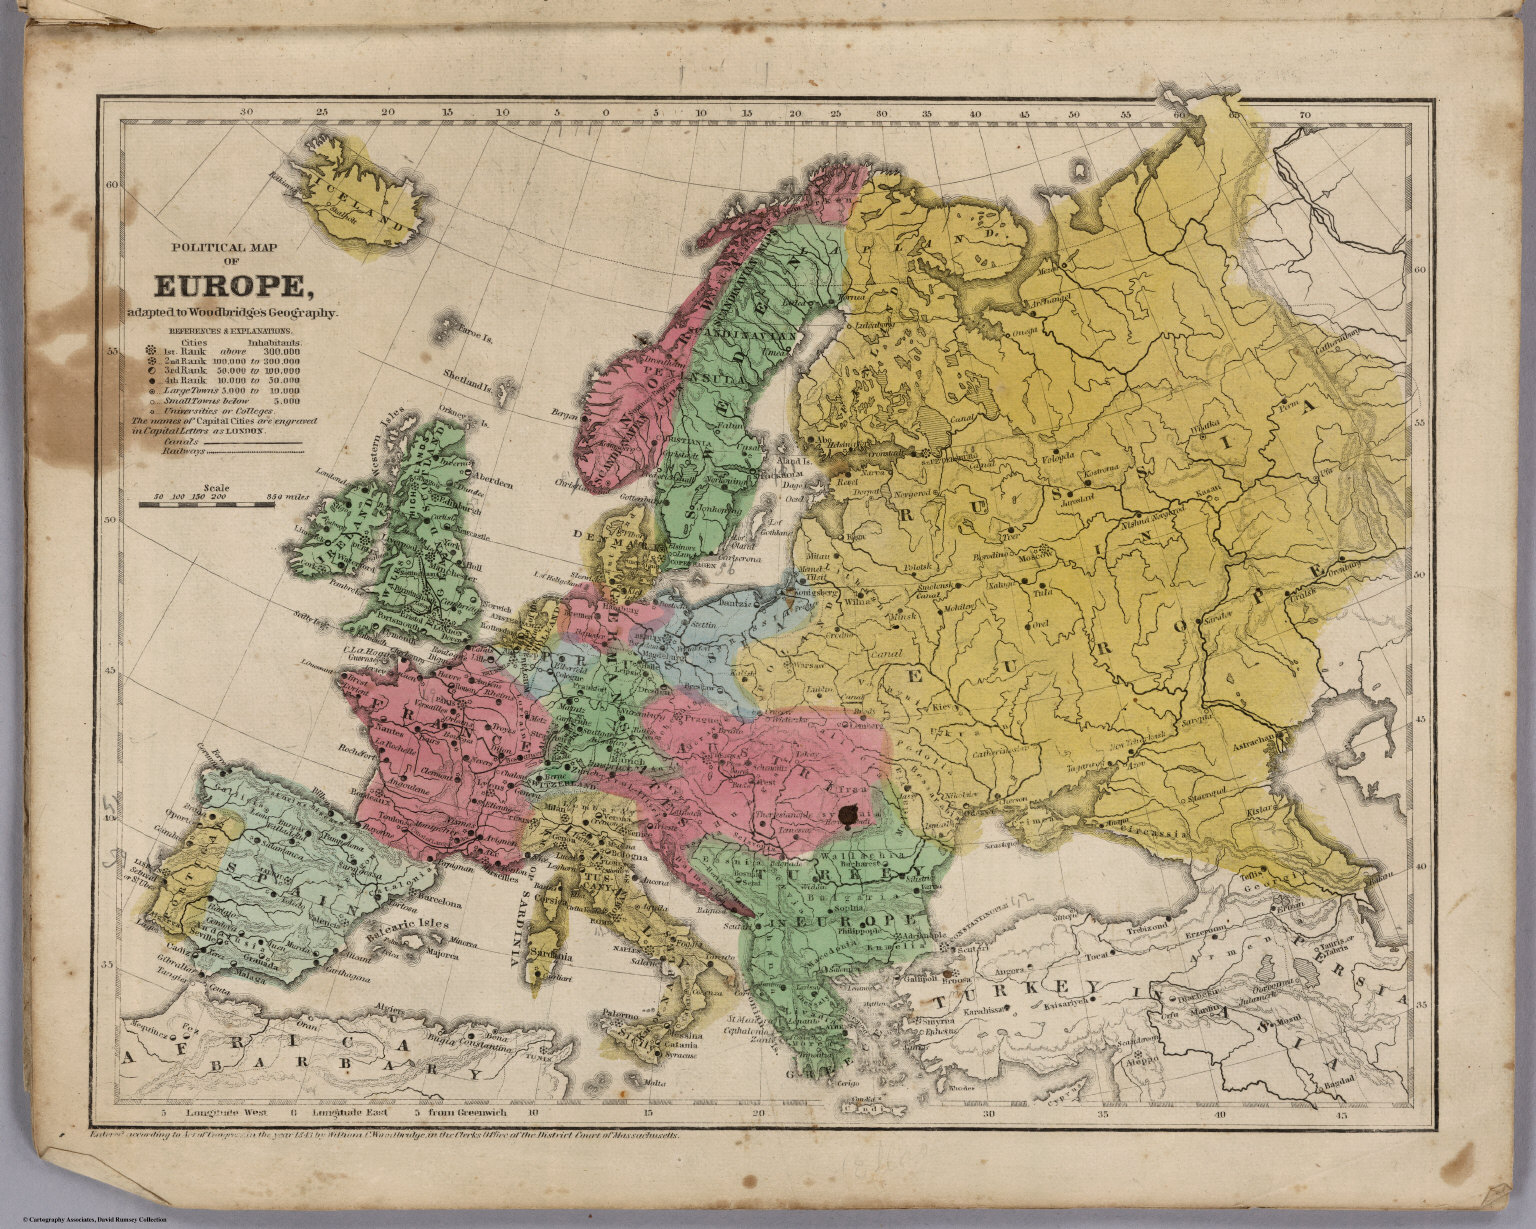 Picture of: Political Map Of Europe David Rumsey Historical Map Collection